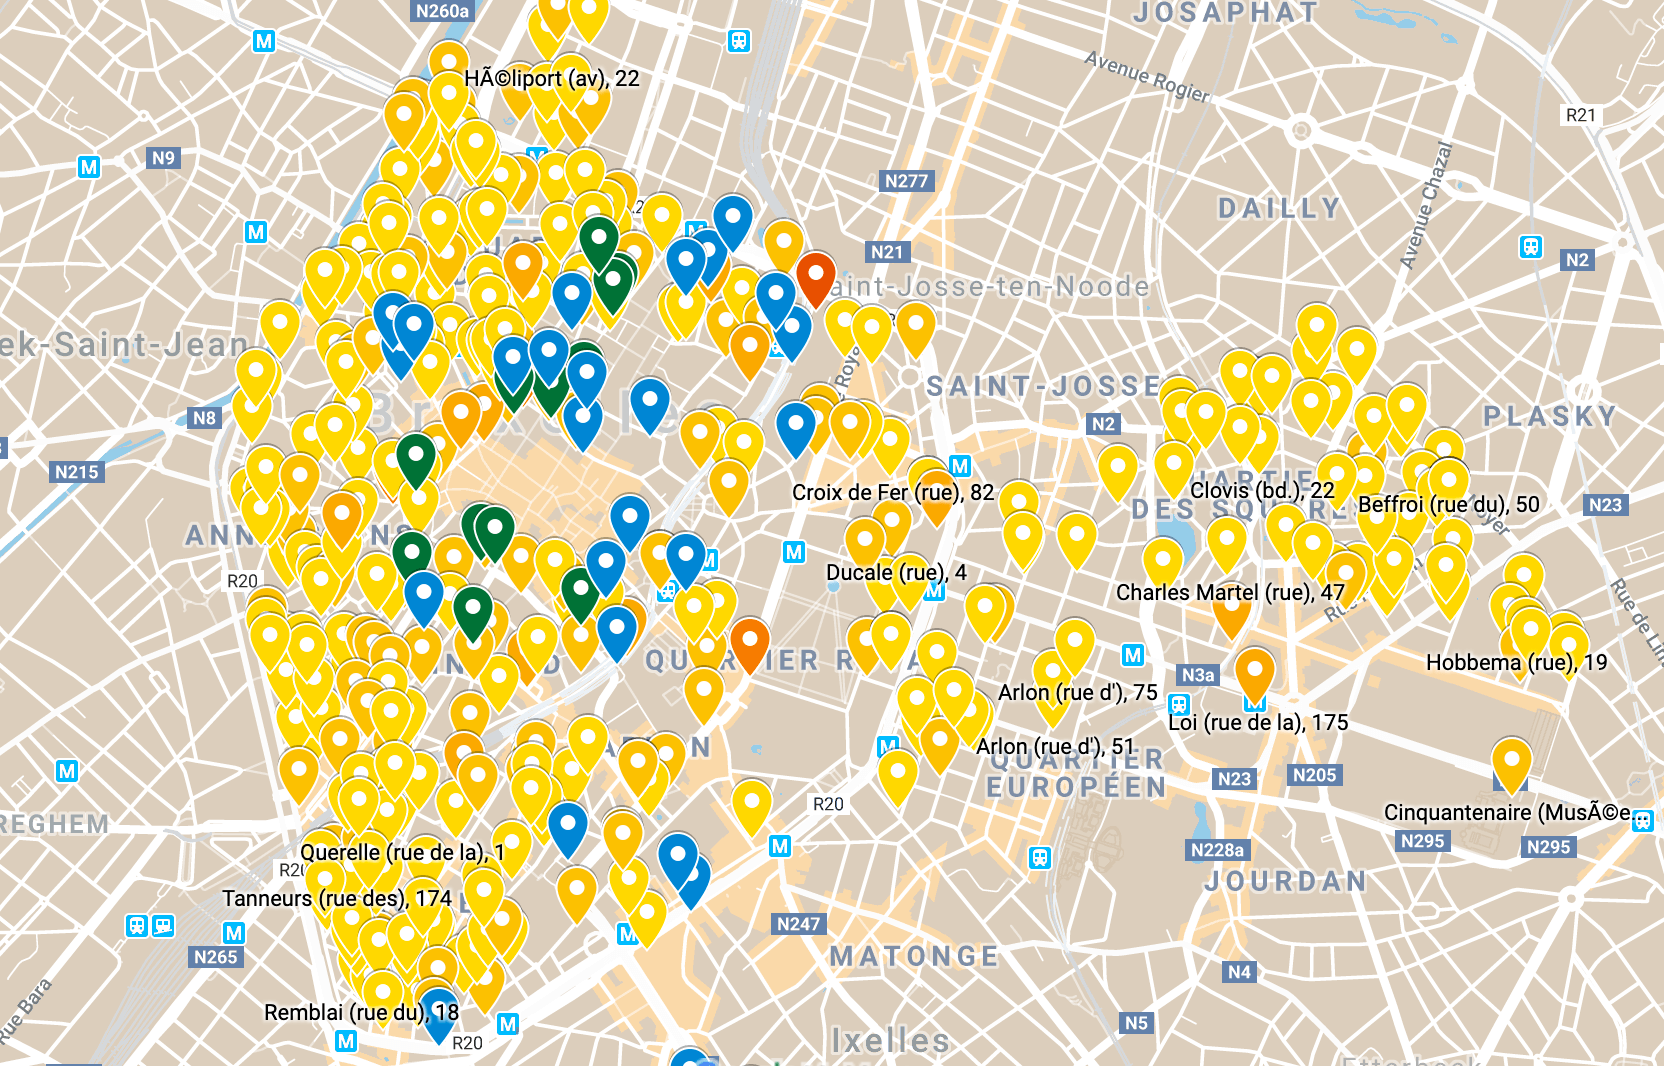 Une carte permettant de visualiser les places de parking à Bruxelles